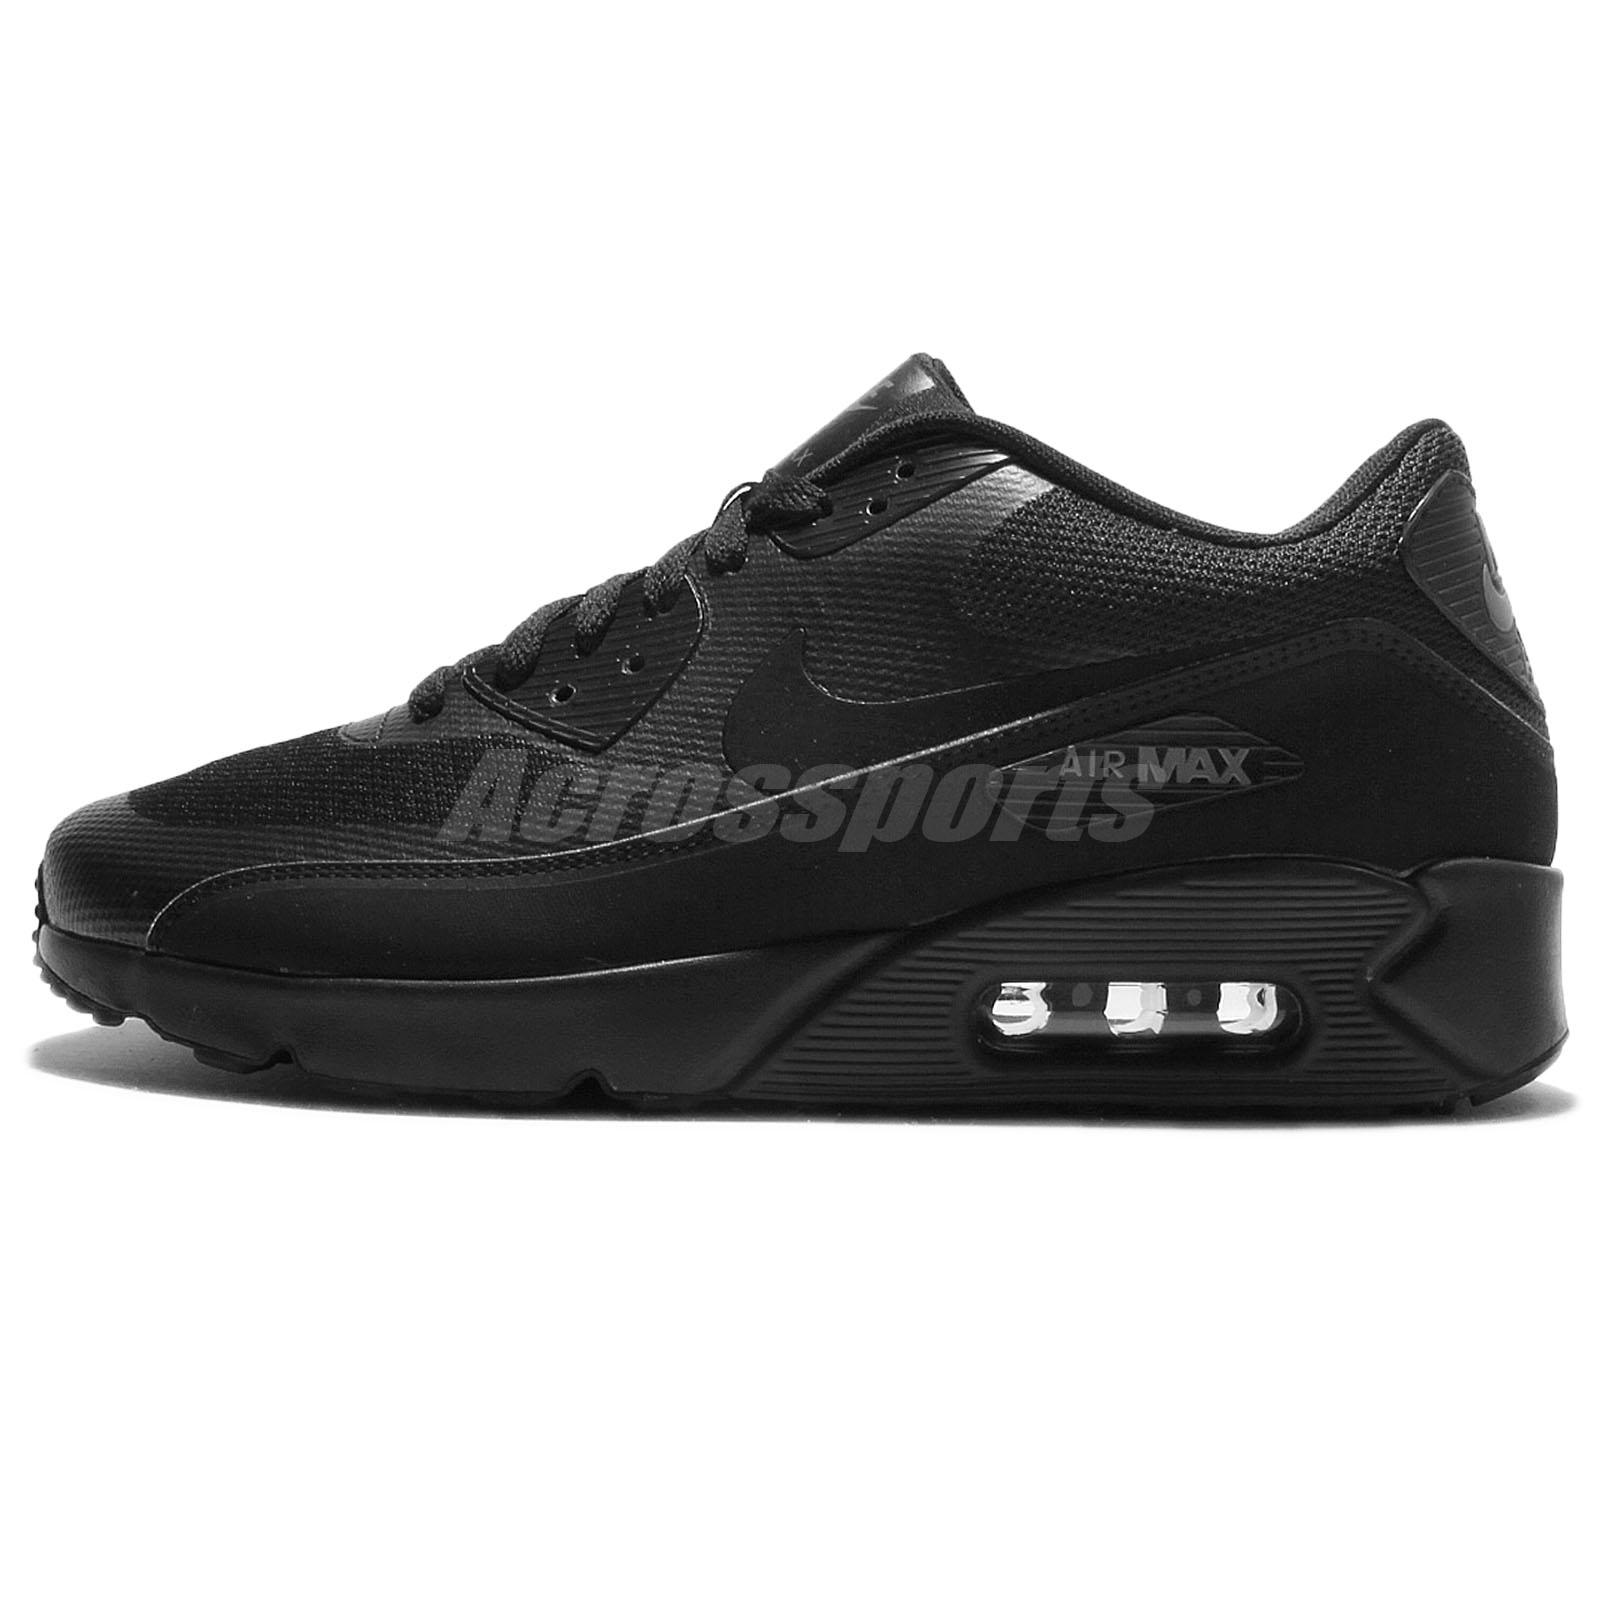 Nike Air Max 90 Ultra 2.0 Essential Triple Black Men Running Shoes  875695-002 601c39802c